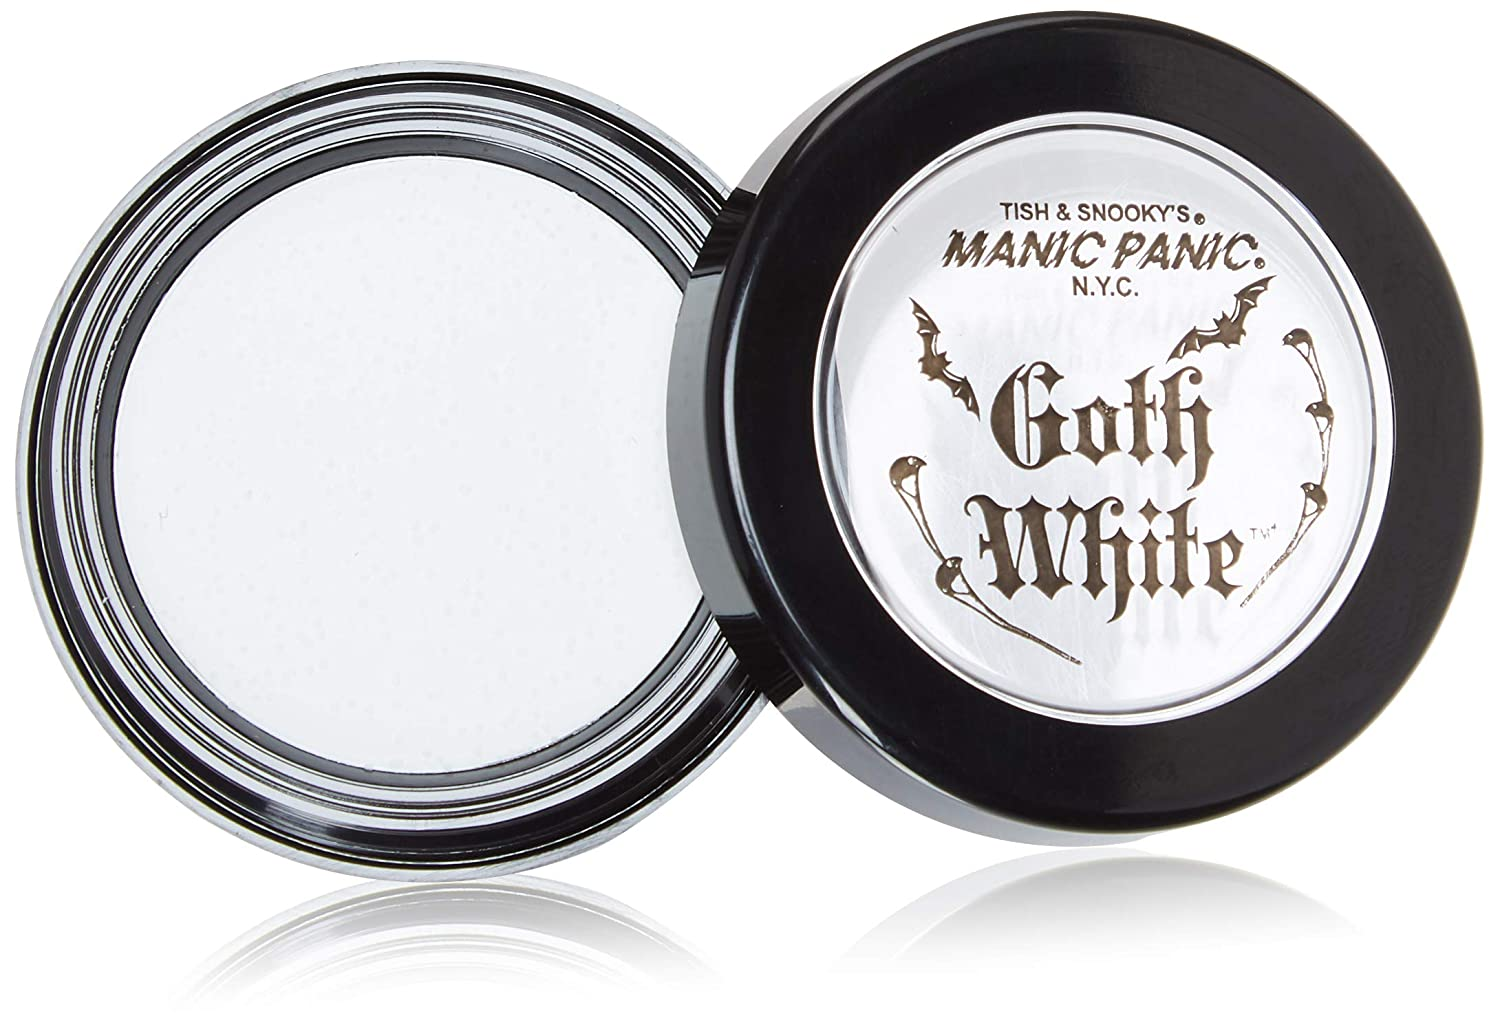 Manic Panic Goth White Cream/Powder Foundation GWH38101